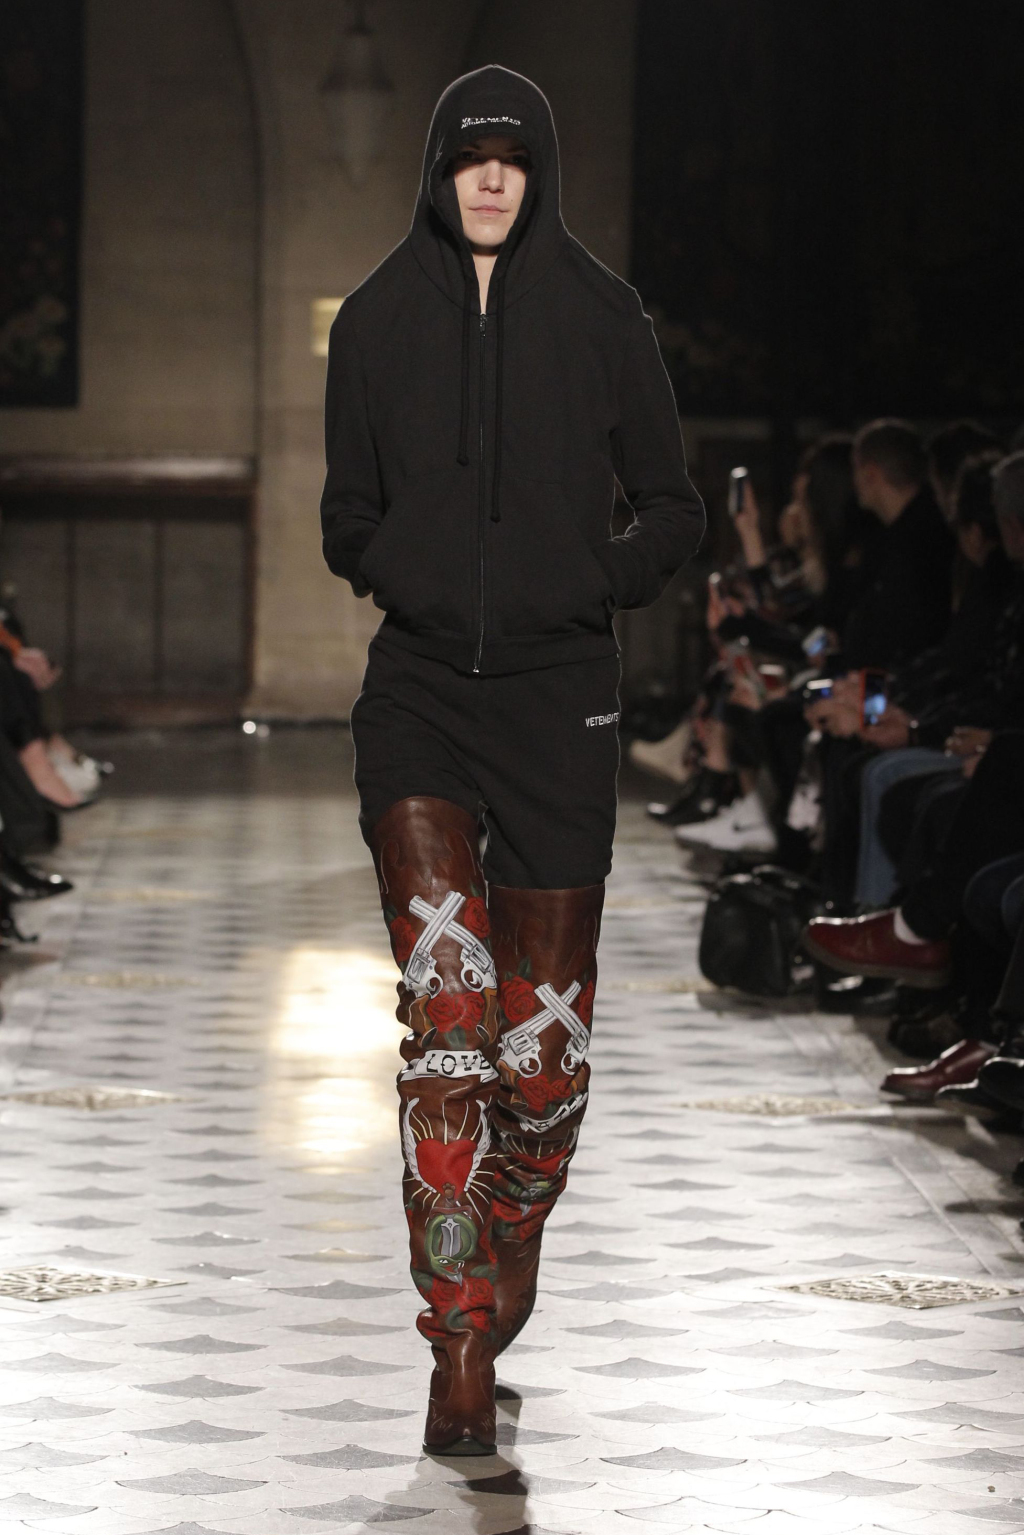 Mandatory Credit: Photo by REX/Shutterstock (5609525ak) Model on the catwalk Vetements show, Runway, Autumn Winter 2016, Paris Fashion Week, France - 03 Mar 2016